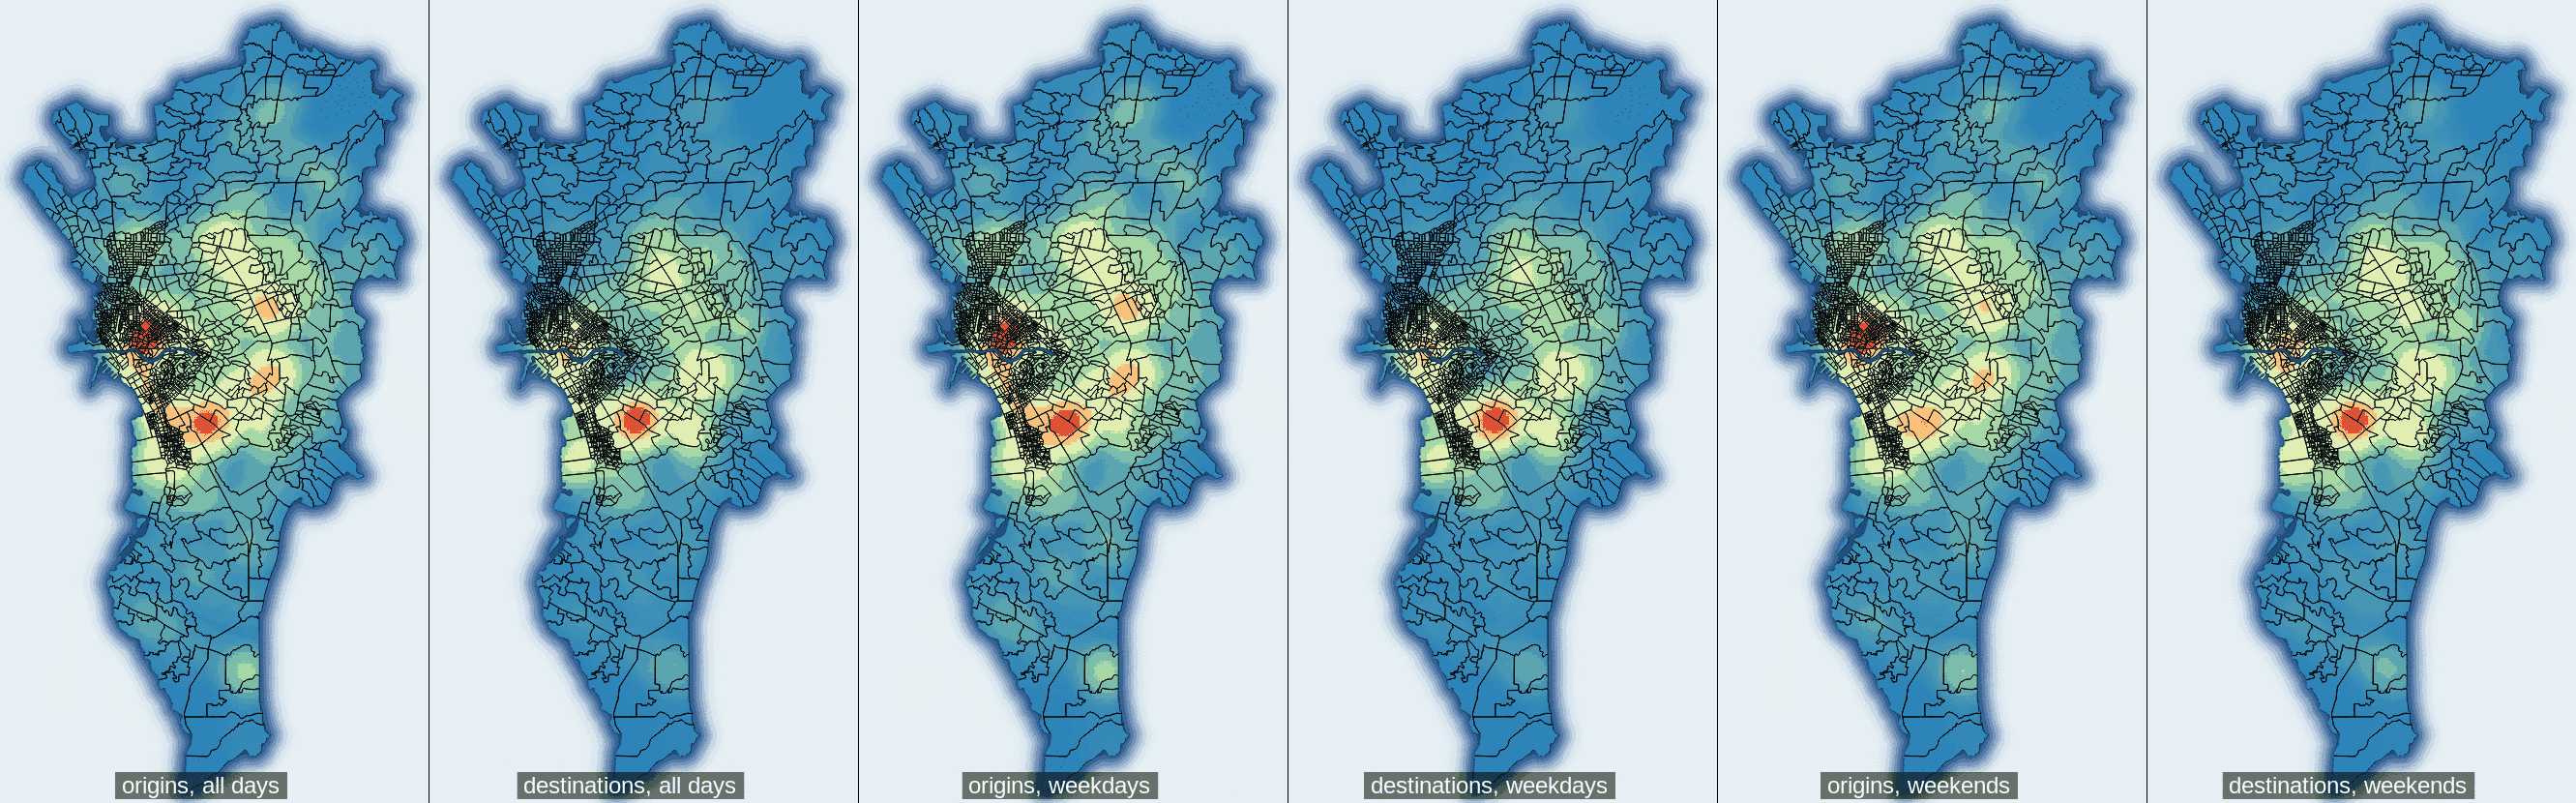 Heatmap, side-by-side